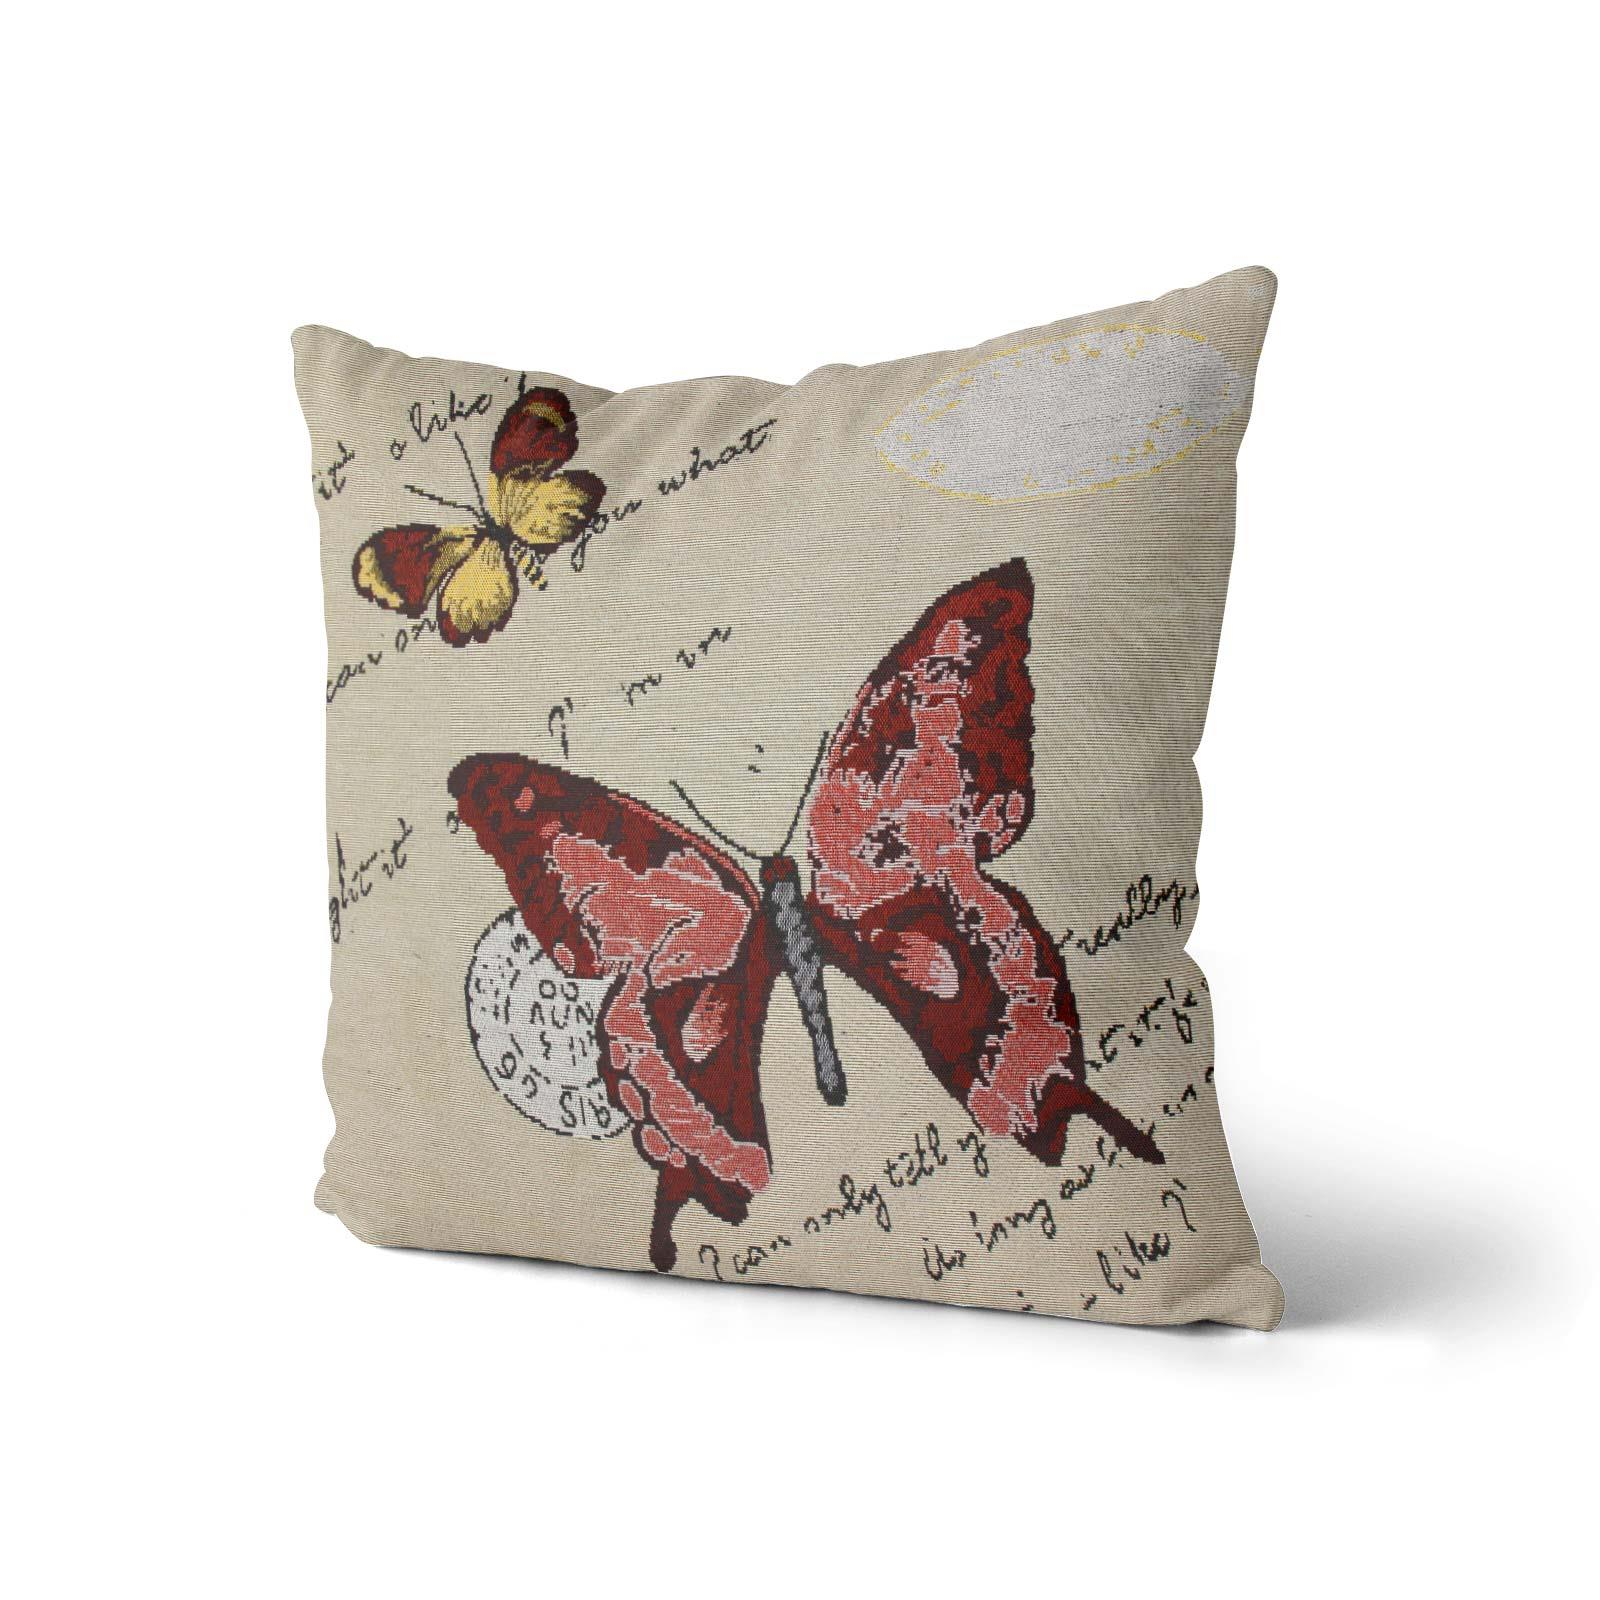 Tapestry-Cushion-Covers-Vintage-Pillow-Cover-Collection-18-034-45cm-Filled-Cushions thumbnail 14